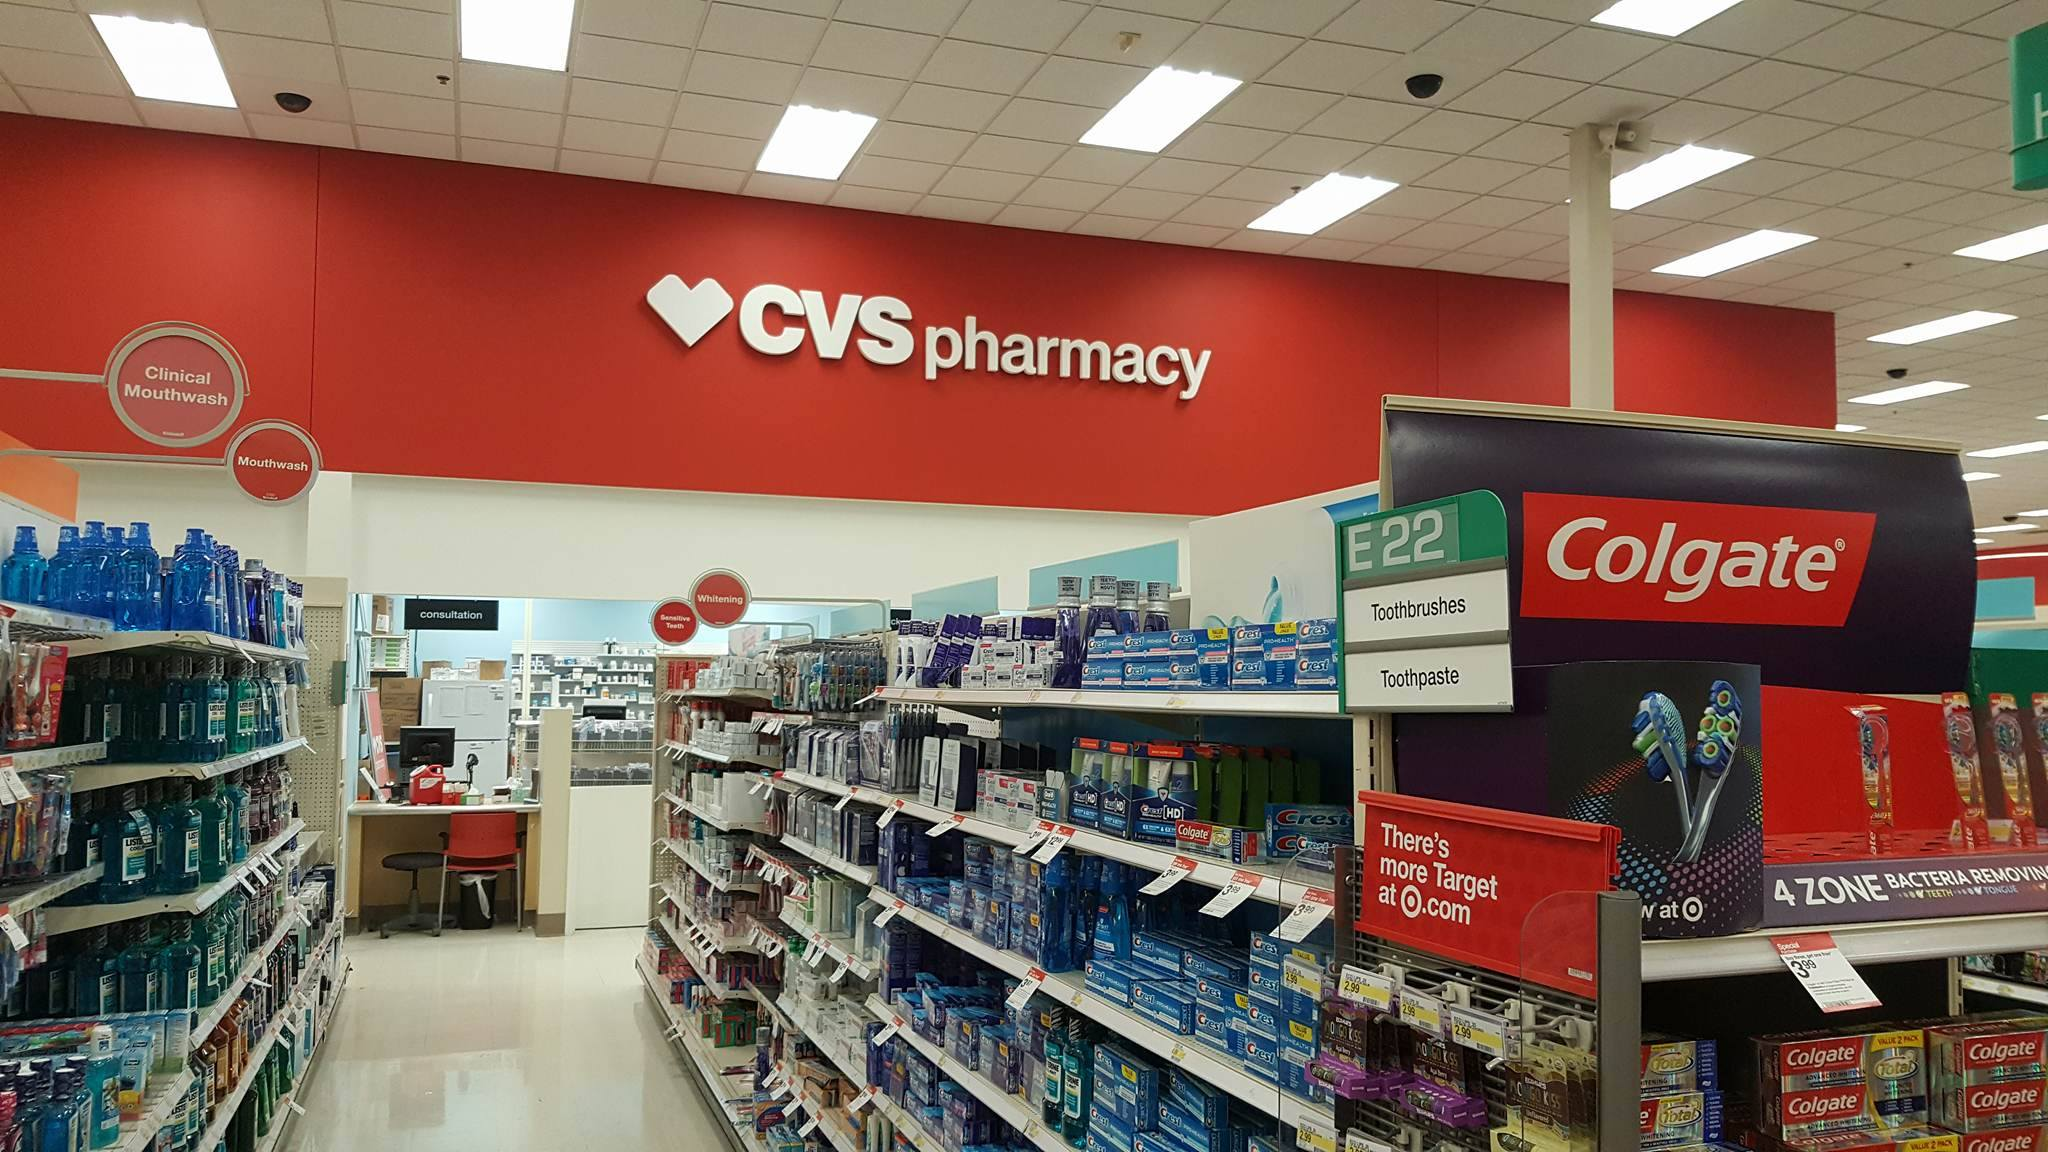 target pharmacy is now cvs pharmacy